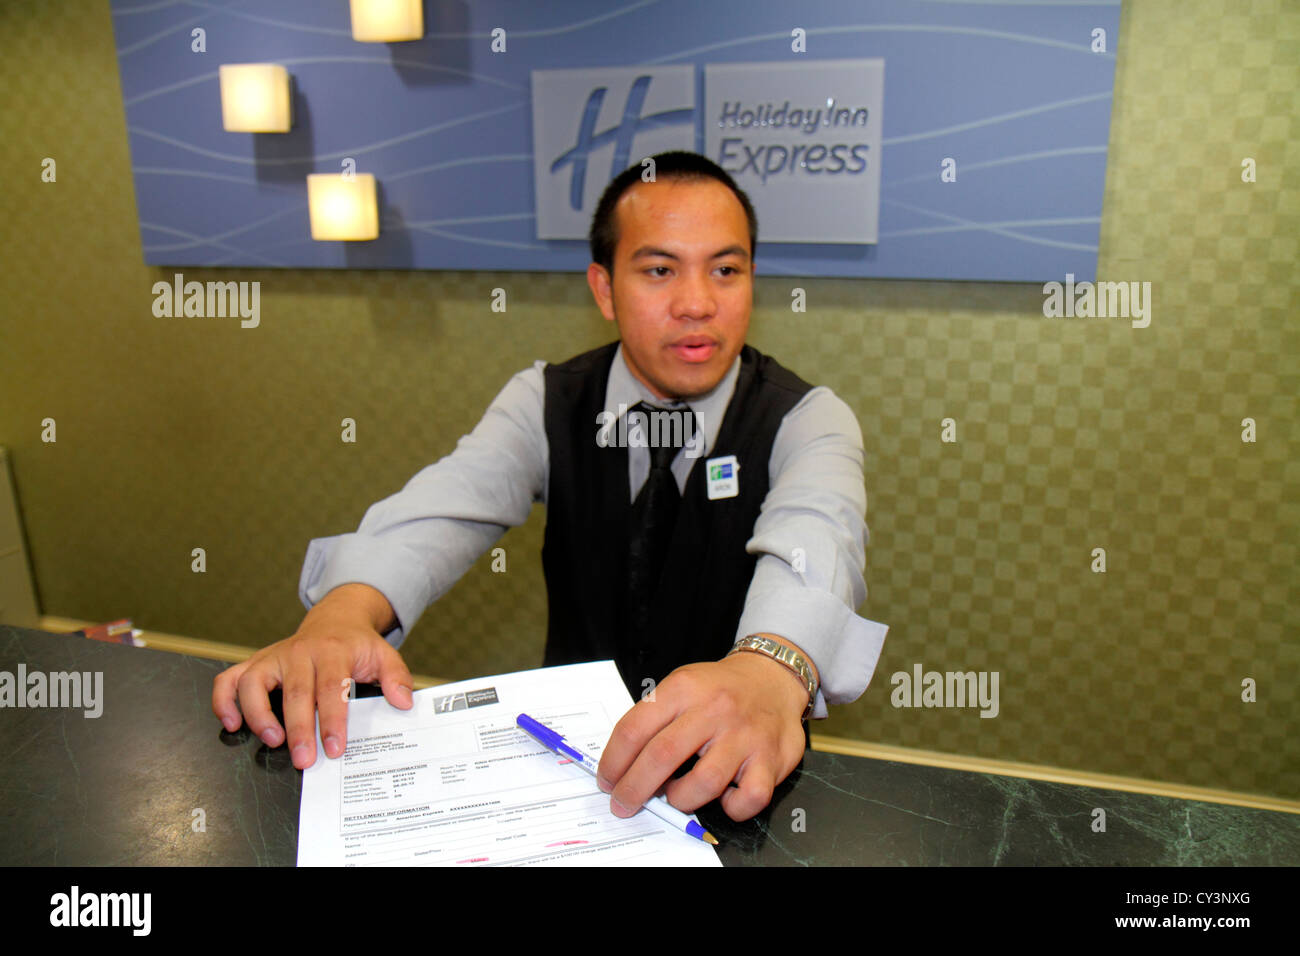 Rhode Island Newport Middletown Holiday Inn Express motel hotel front desk lobby Asian man employee clerk service - Stock Image